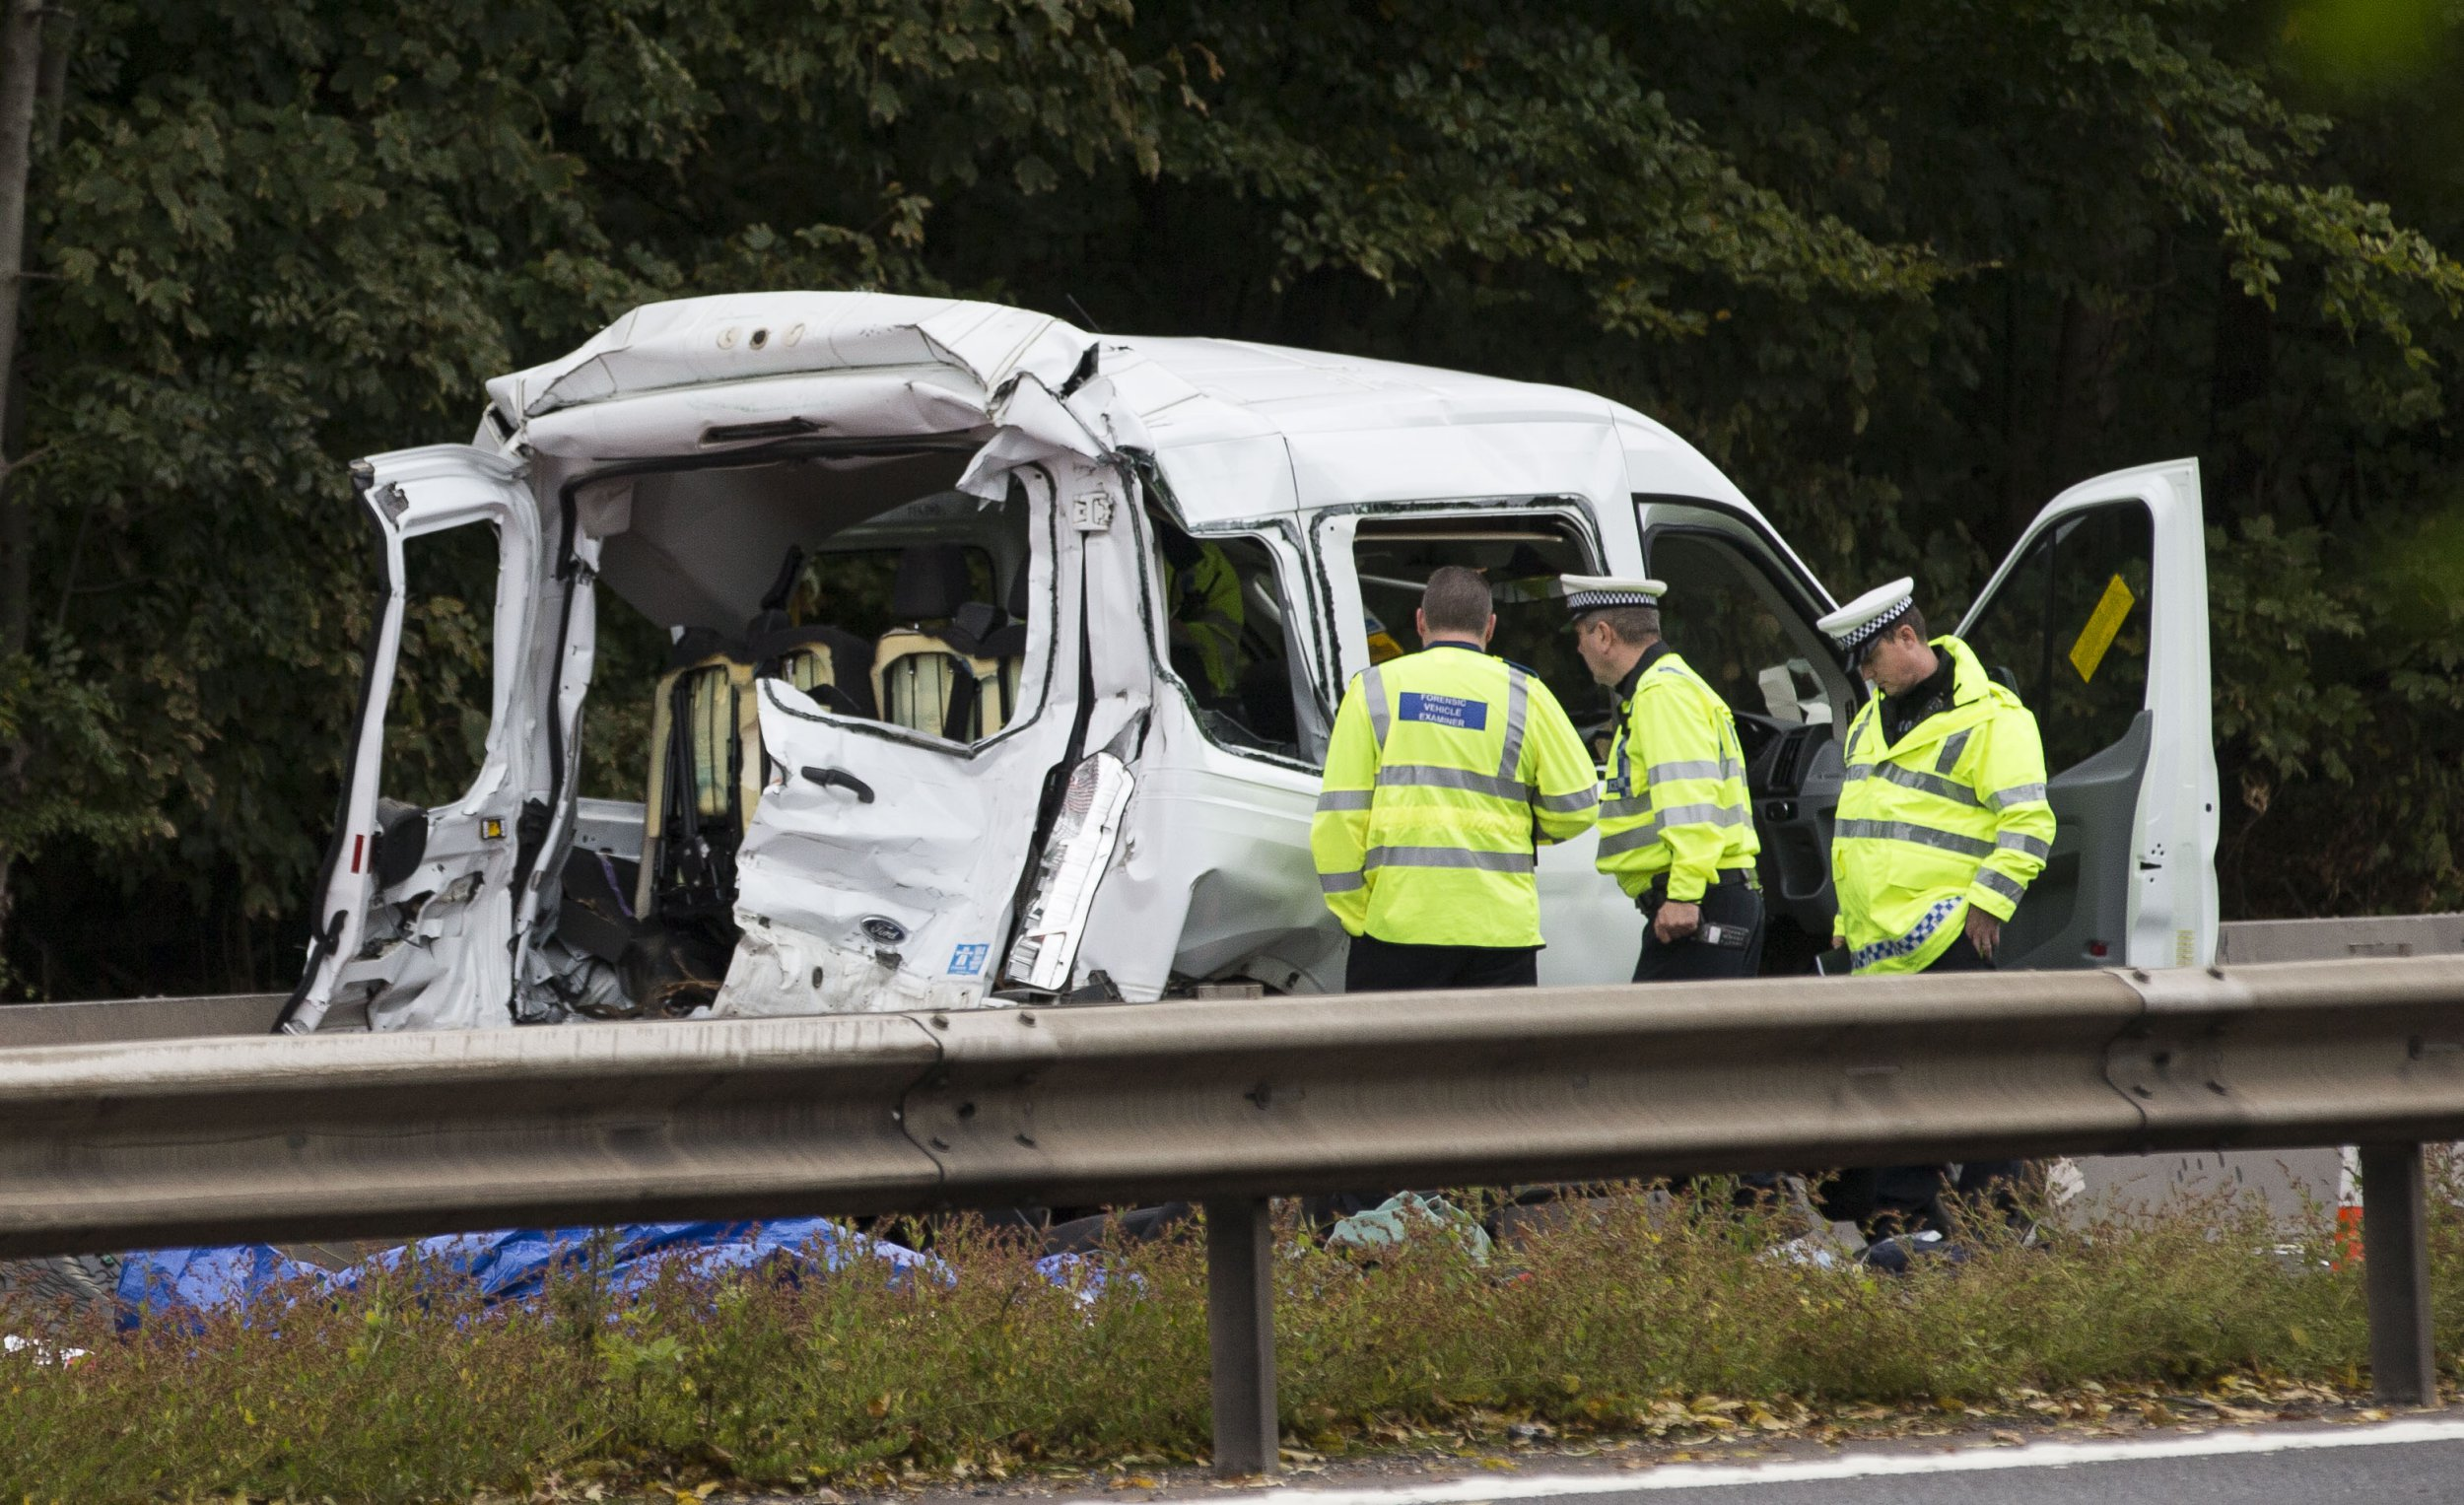 INS News Agency Ltd. 11/10/2018 *************** Picture by James Robinson*************** A multiple crash involving a minibus and a lorry on the M4 motorway was feared to have left at least two people dead and others with tragic injuries this afternoon/Yesterday (Thurs). All six lanes of the m-way were closed creating major traffic jams and long diversions as a fleet of ambulances, four helicopters including three air ambulances, fire crews and police converged on the dramatic scene. Three people were fighting for their lives and three more were taken to hospital with serious injuries after the collision. The crash happened on the London-bound carriageway of the M4 near Welford, Berkshire just after 1.30pm See copy INSmini